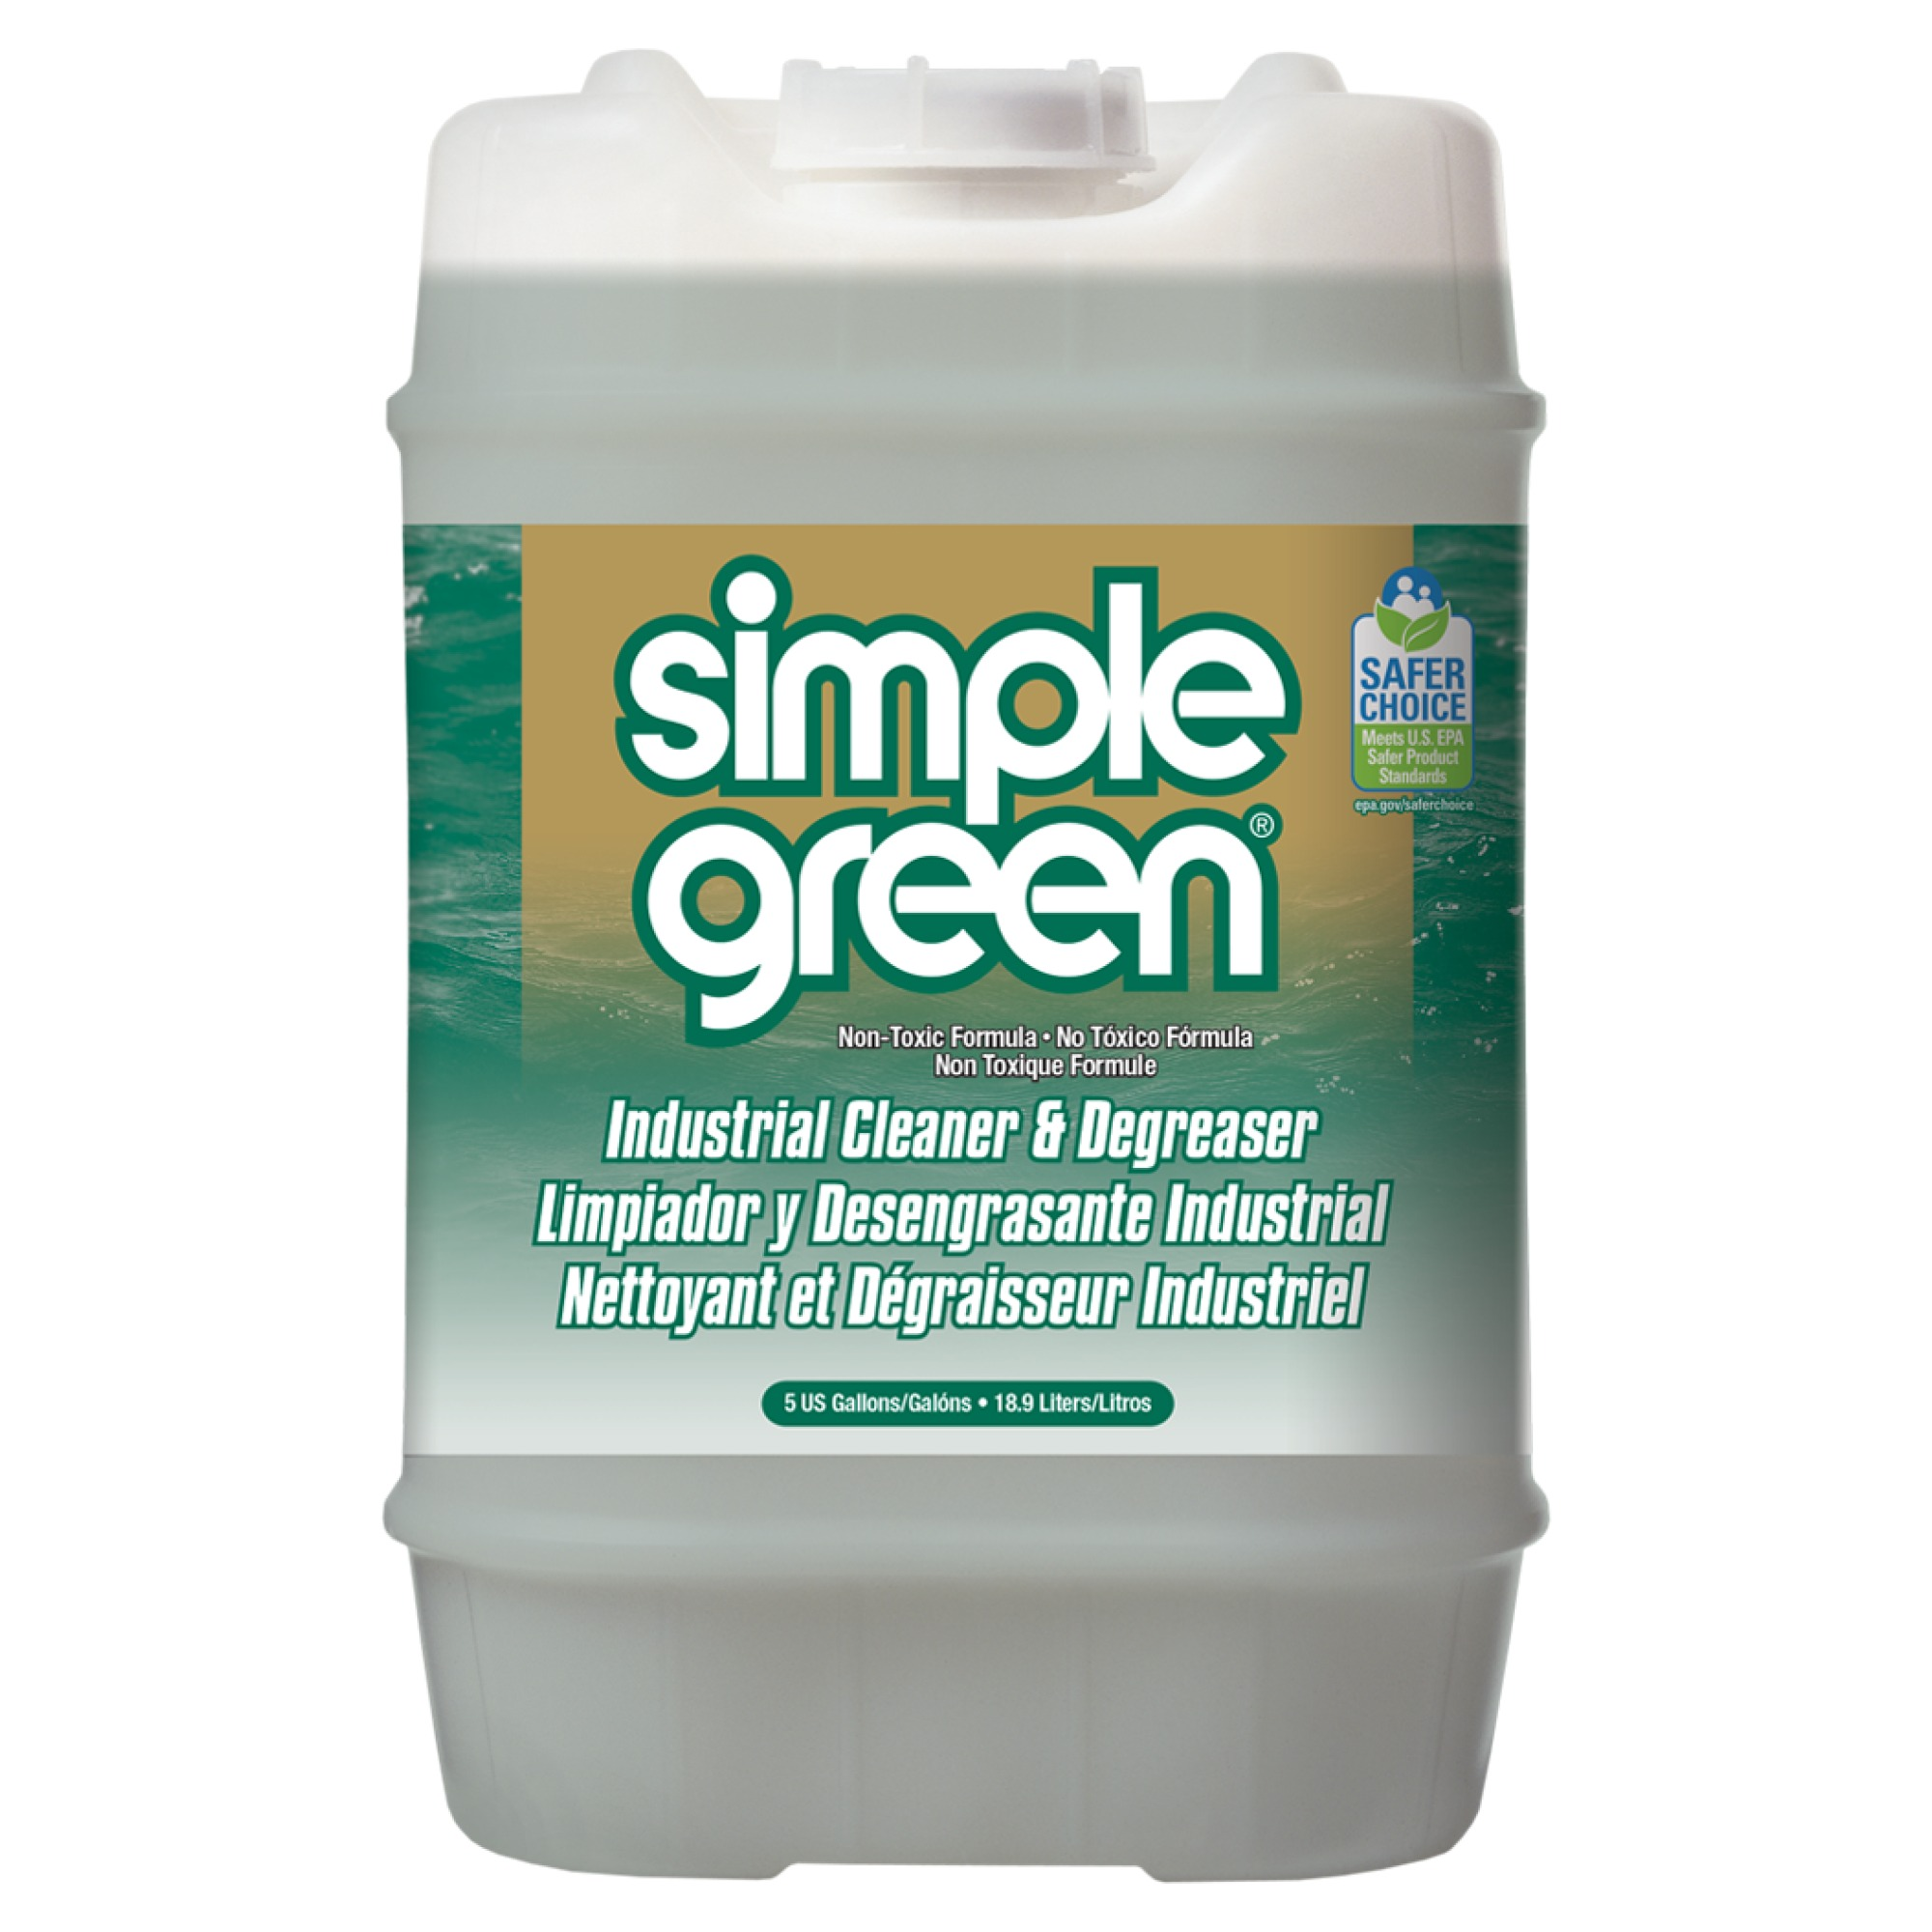 Simple Green 5 gal. Industrial Cleaner Degreaser